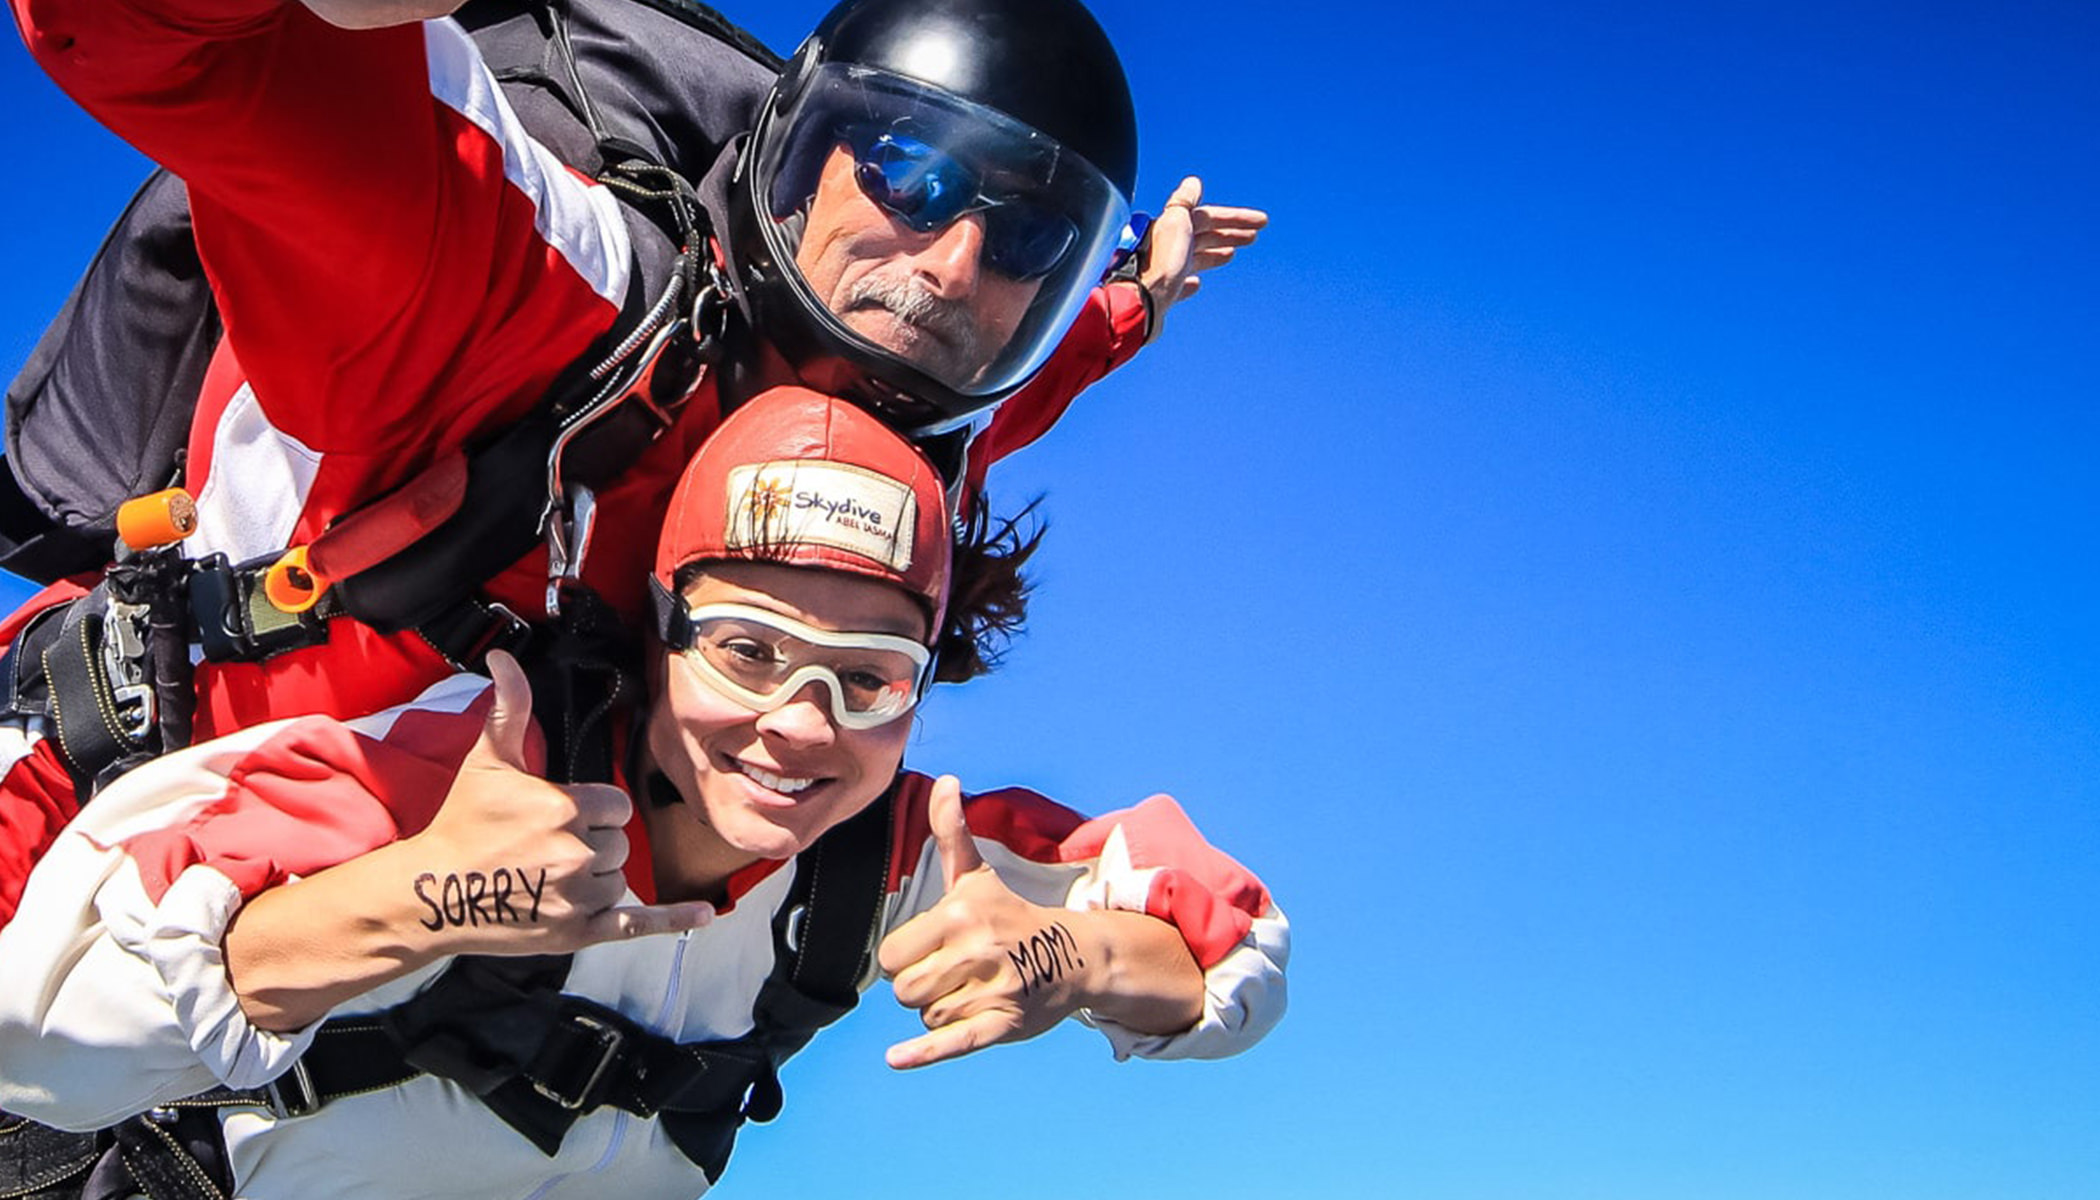 Skydive Abel Tasman - Biggest changes to their marketing in 25 years.